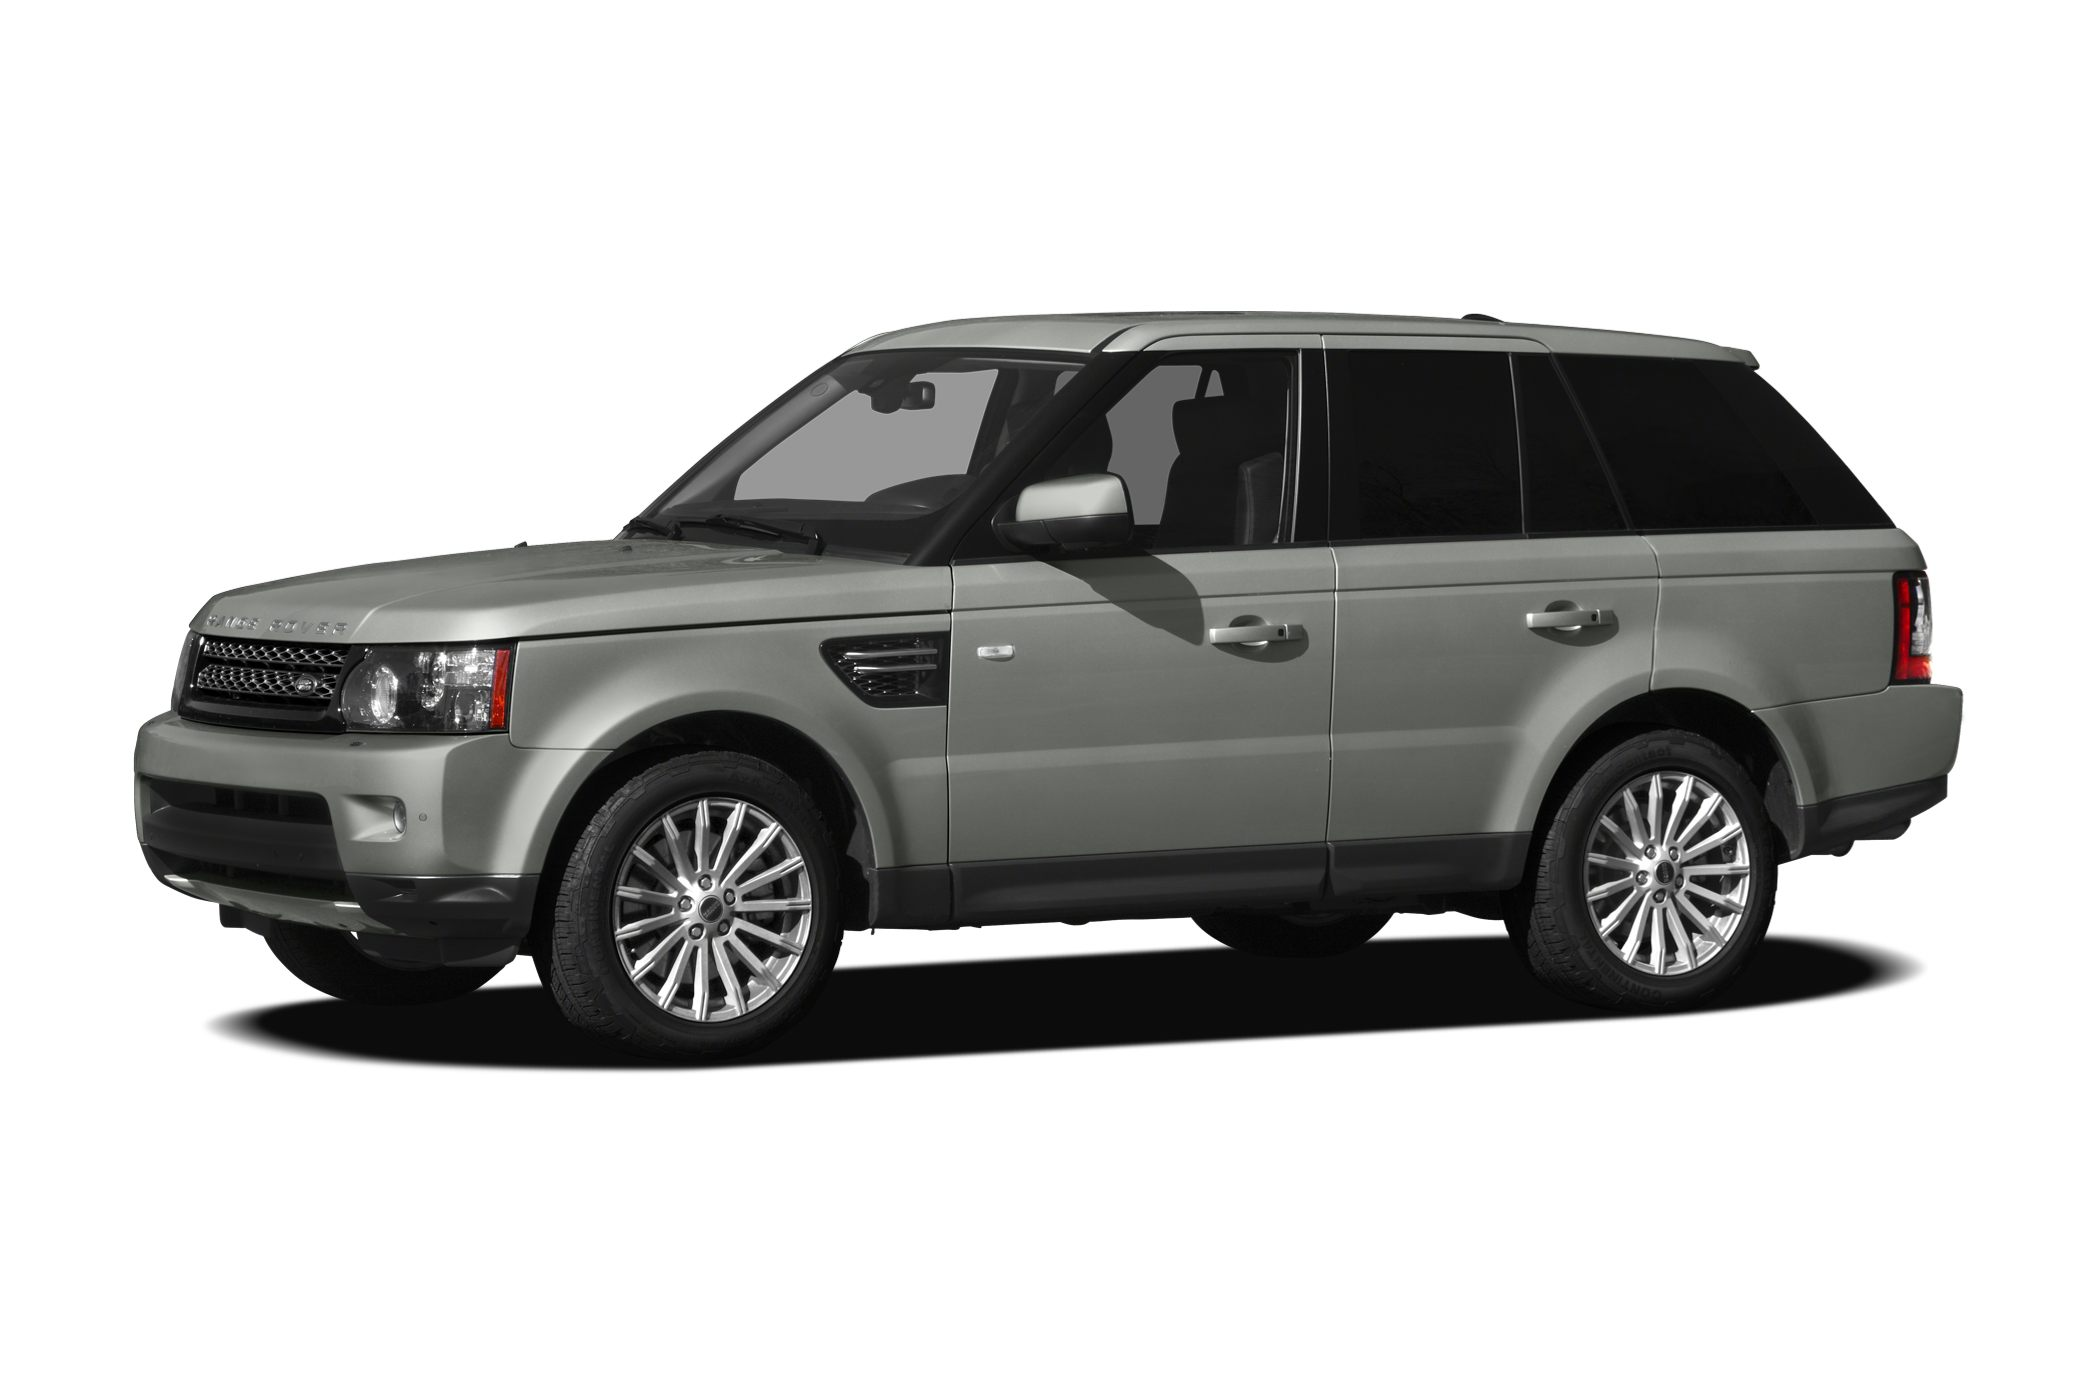 2013 Land Rover Range Rover Sport HSE 4dr 4x4 Pricing and Options